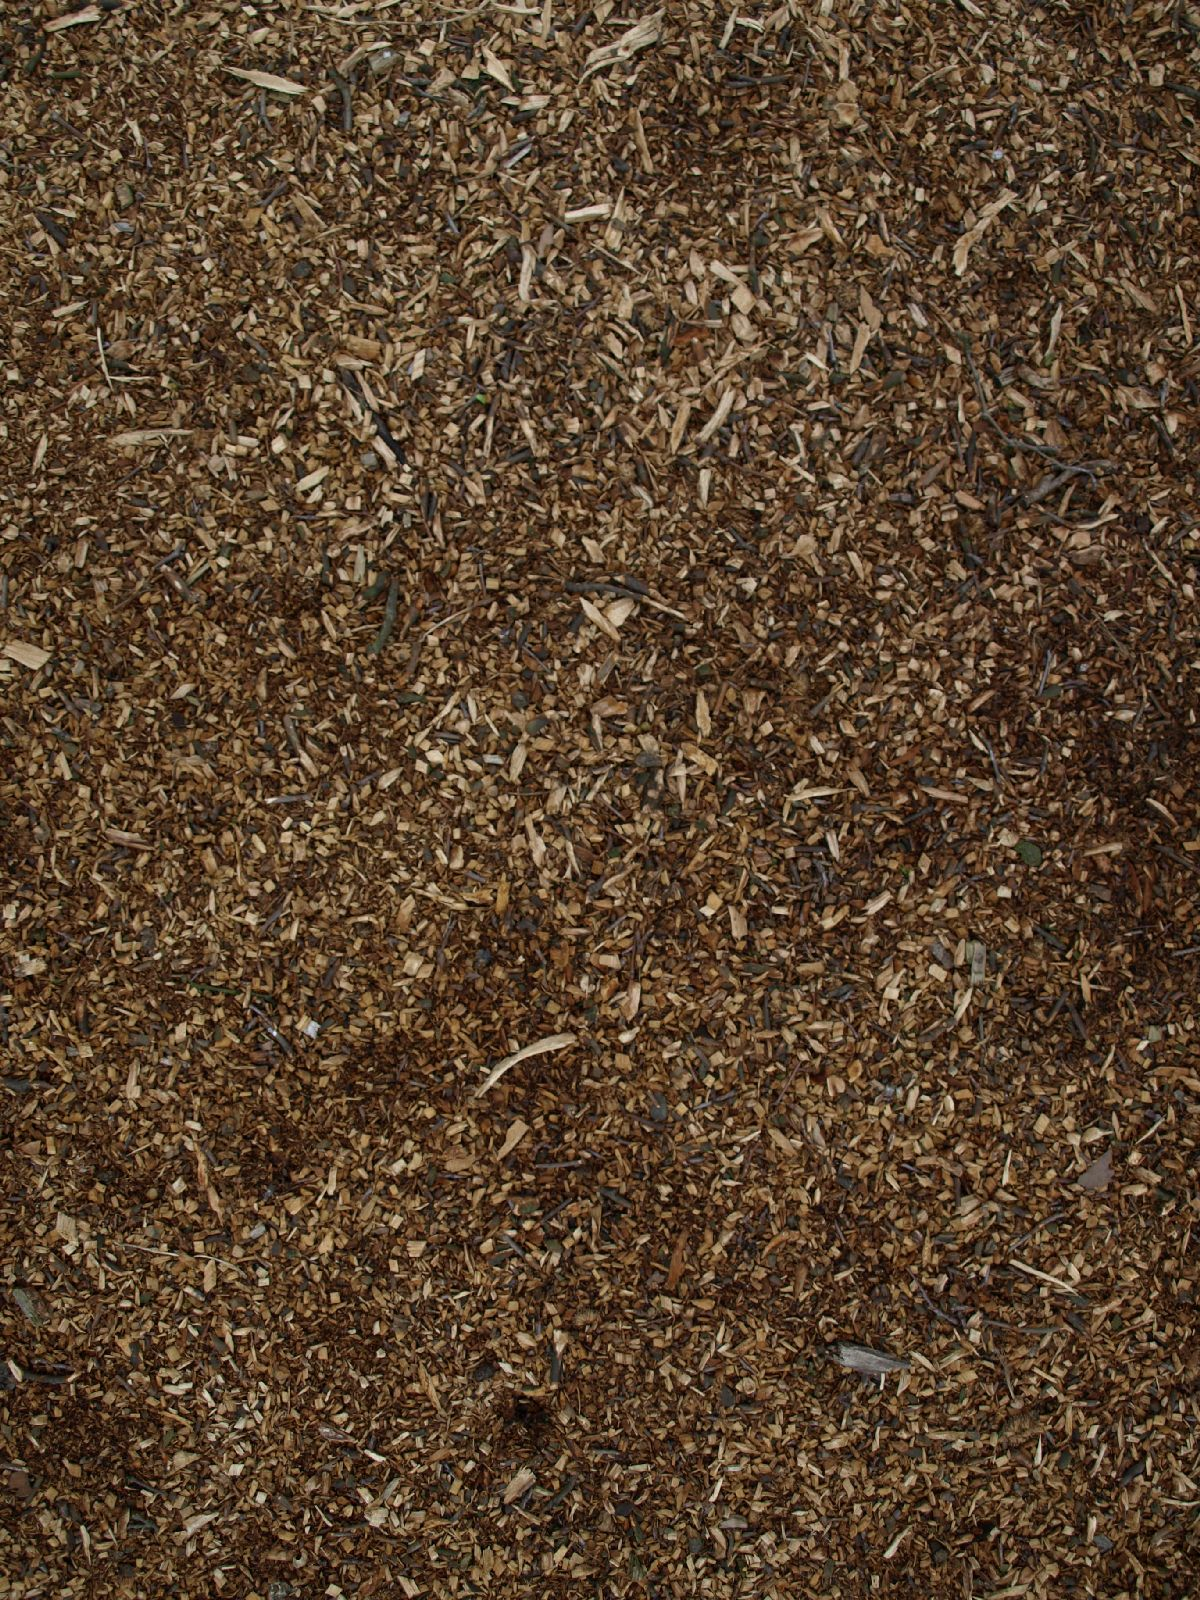 Ground-Nature_Texture_A_P4131167